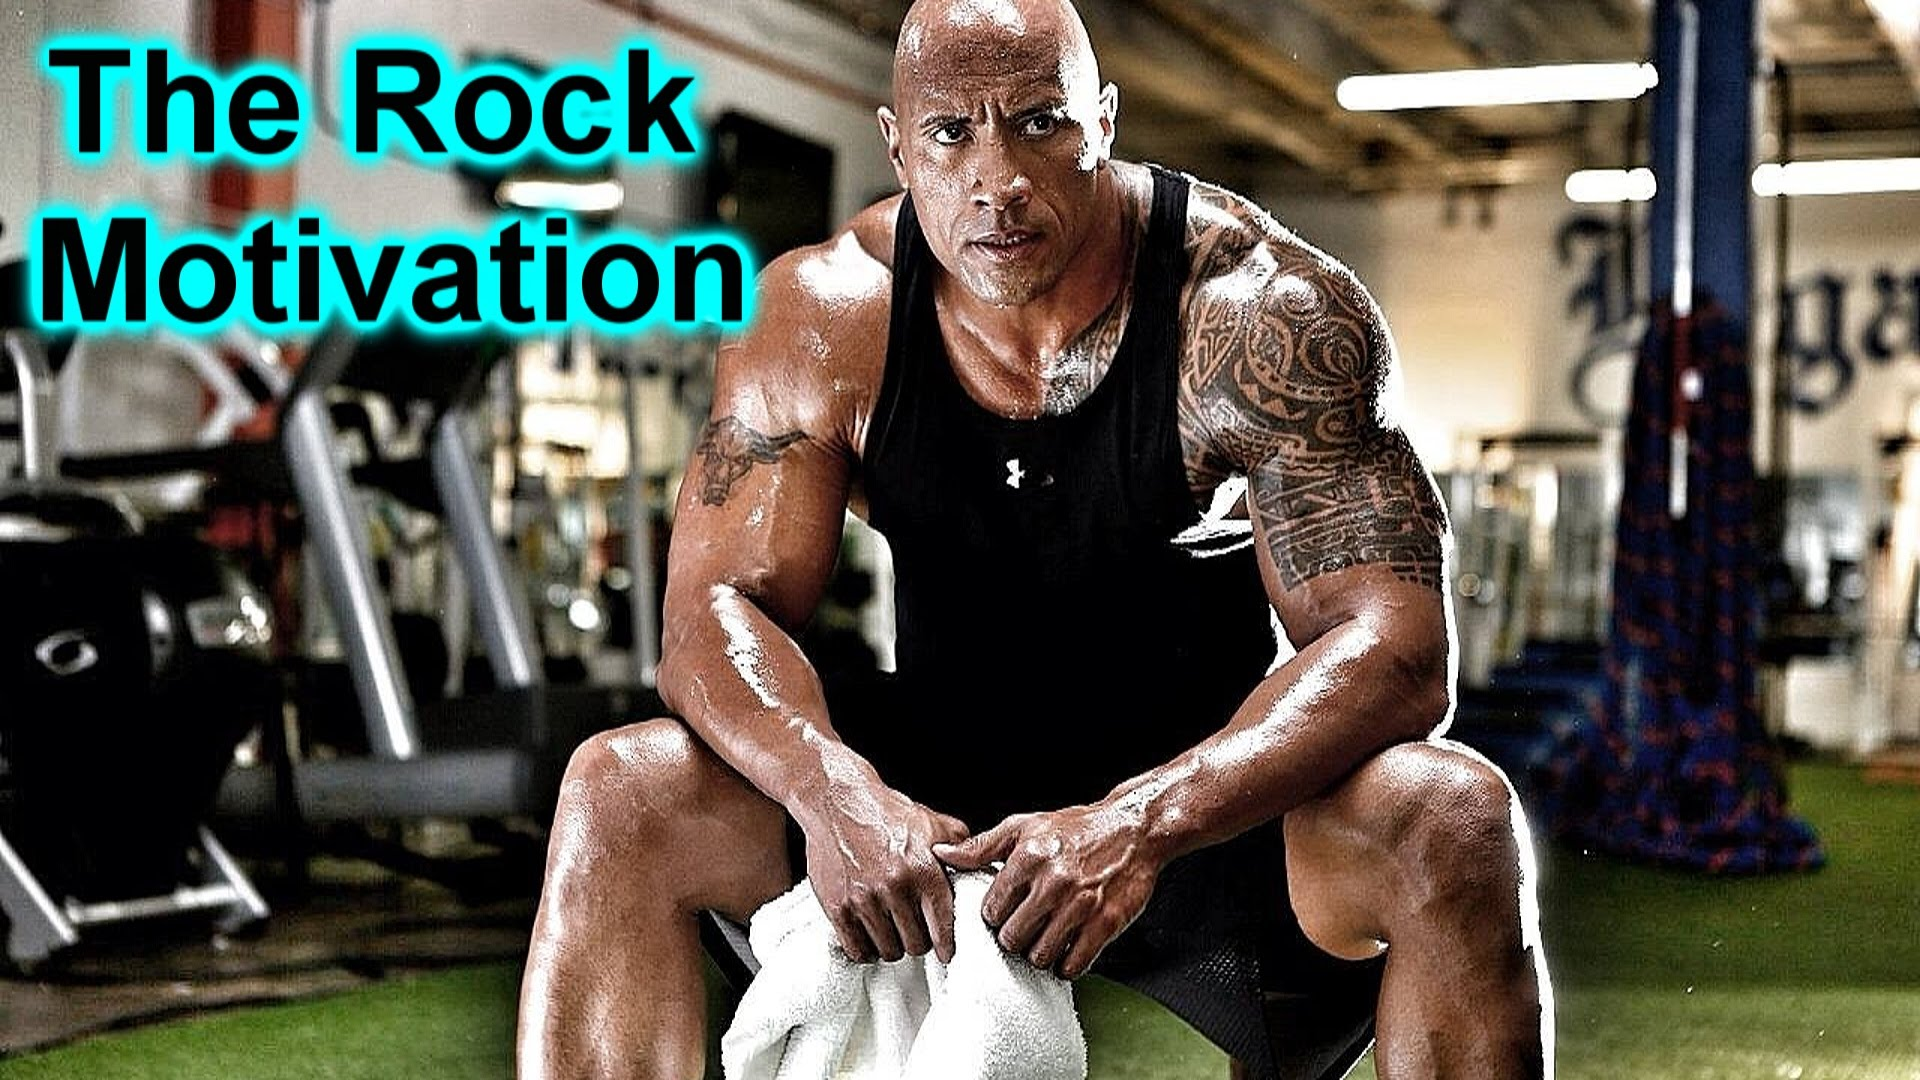 dwayne johnson bodybuilding Image #6